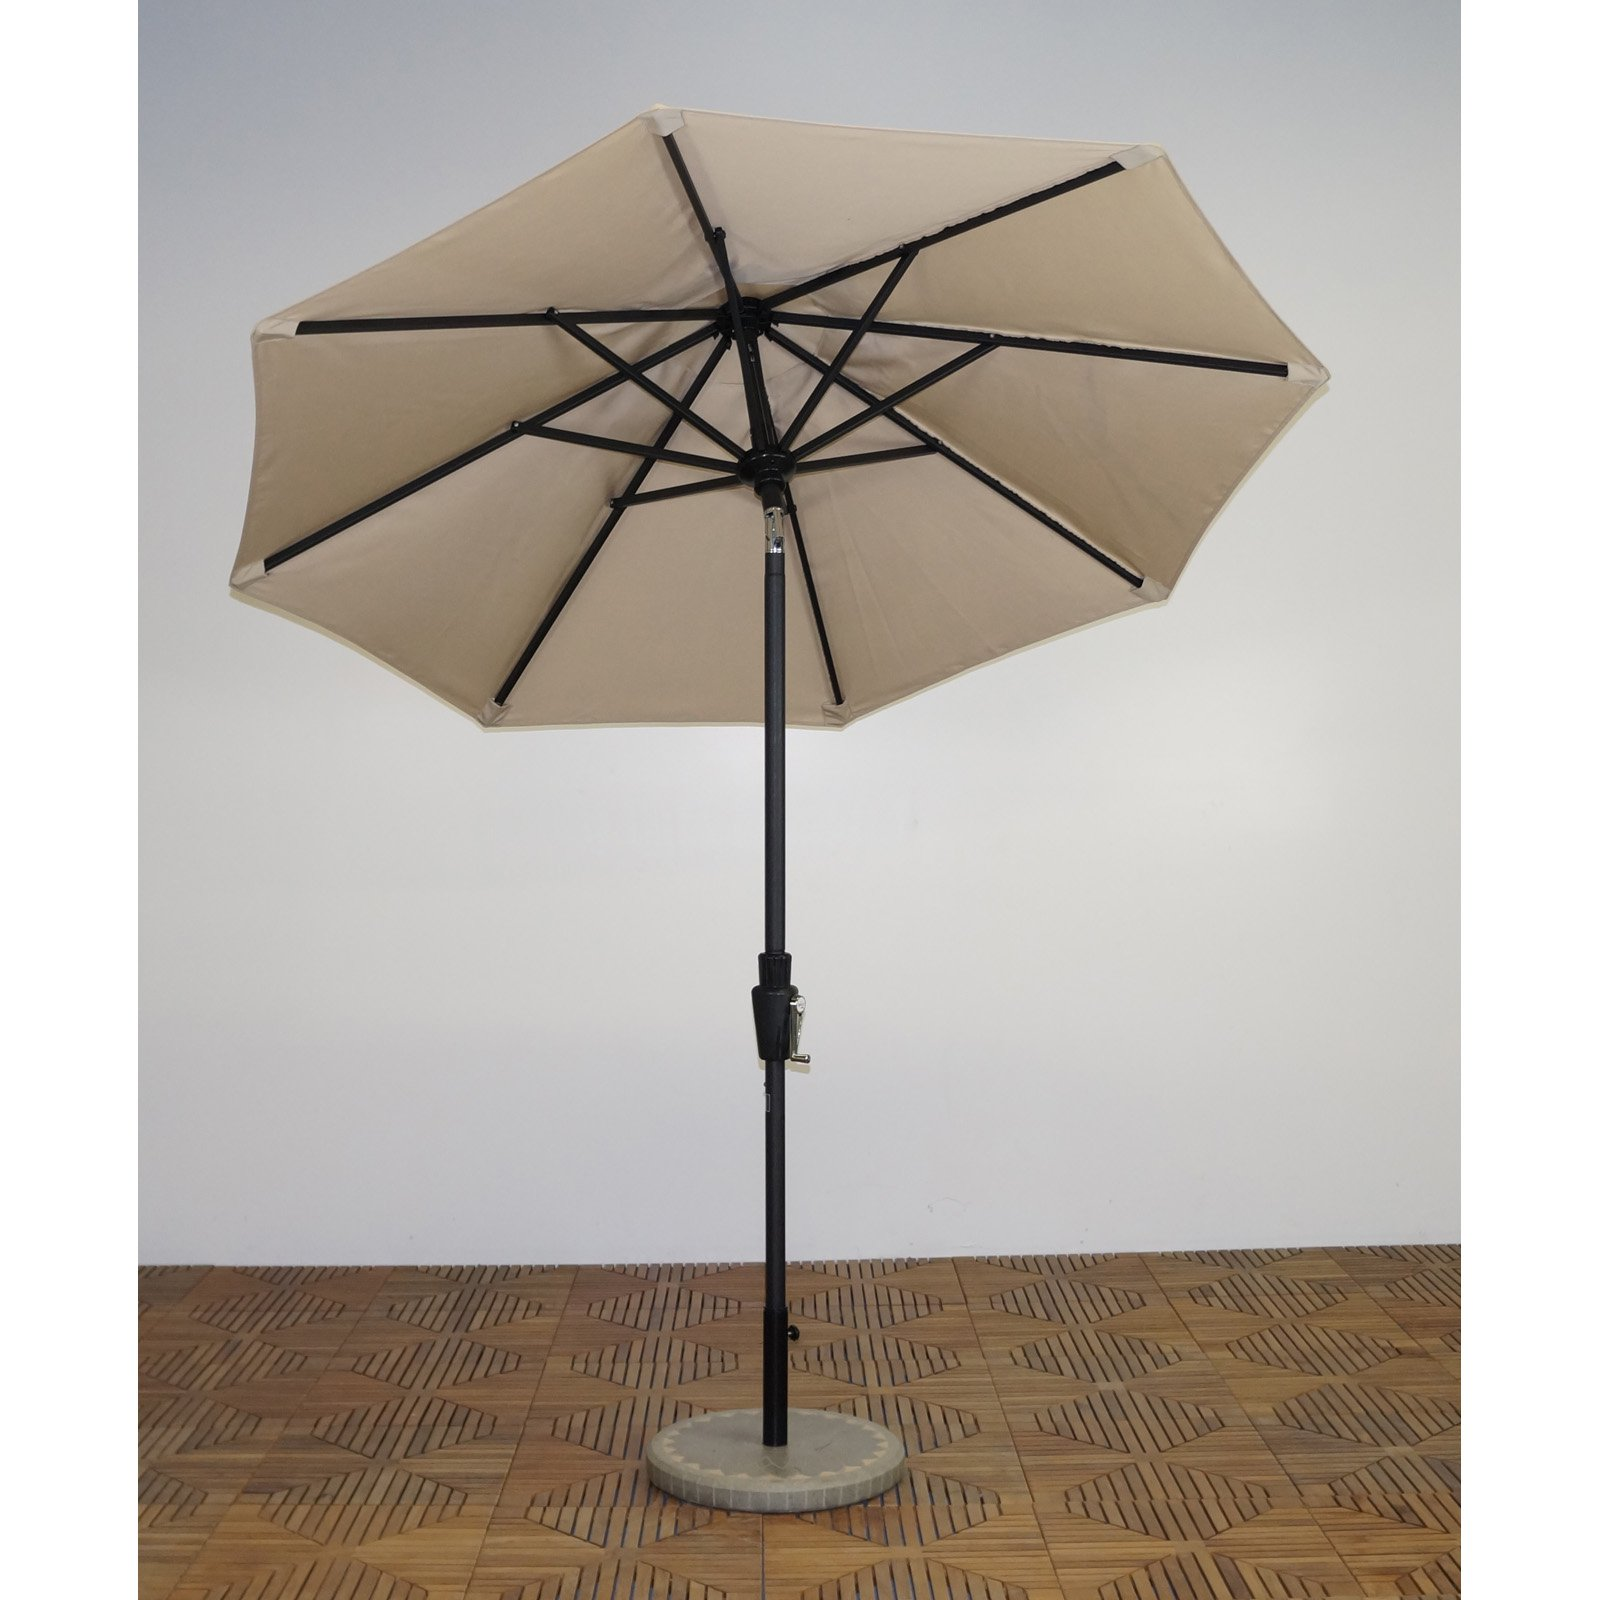 Shade Trends 7.5 ft. Premium Market Umbrella - Licorice Frame